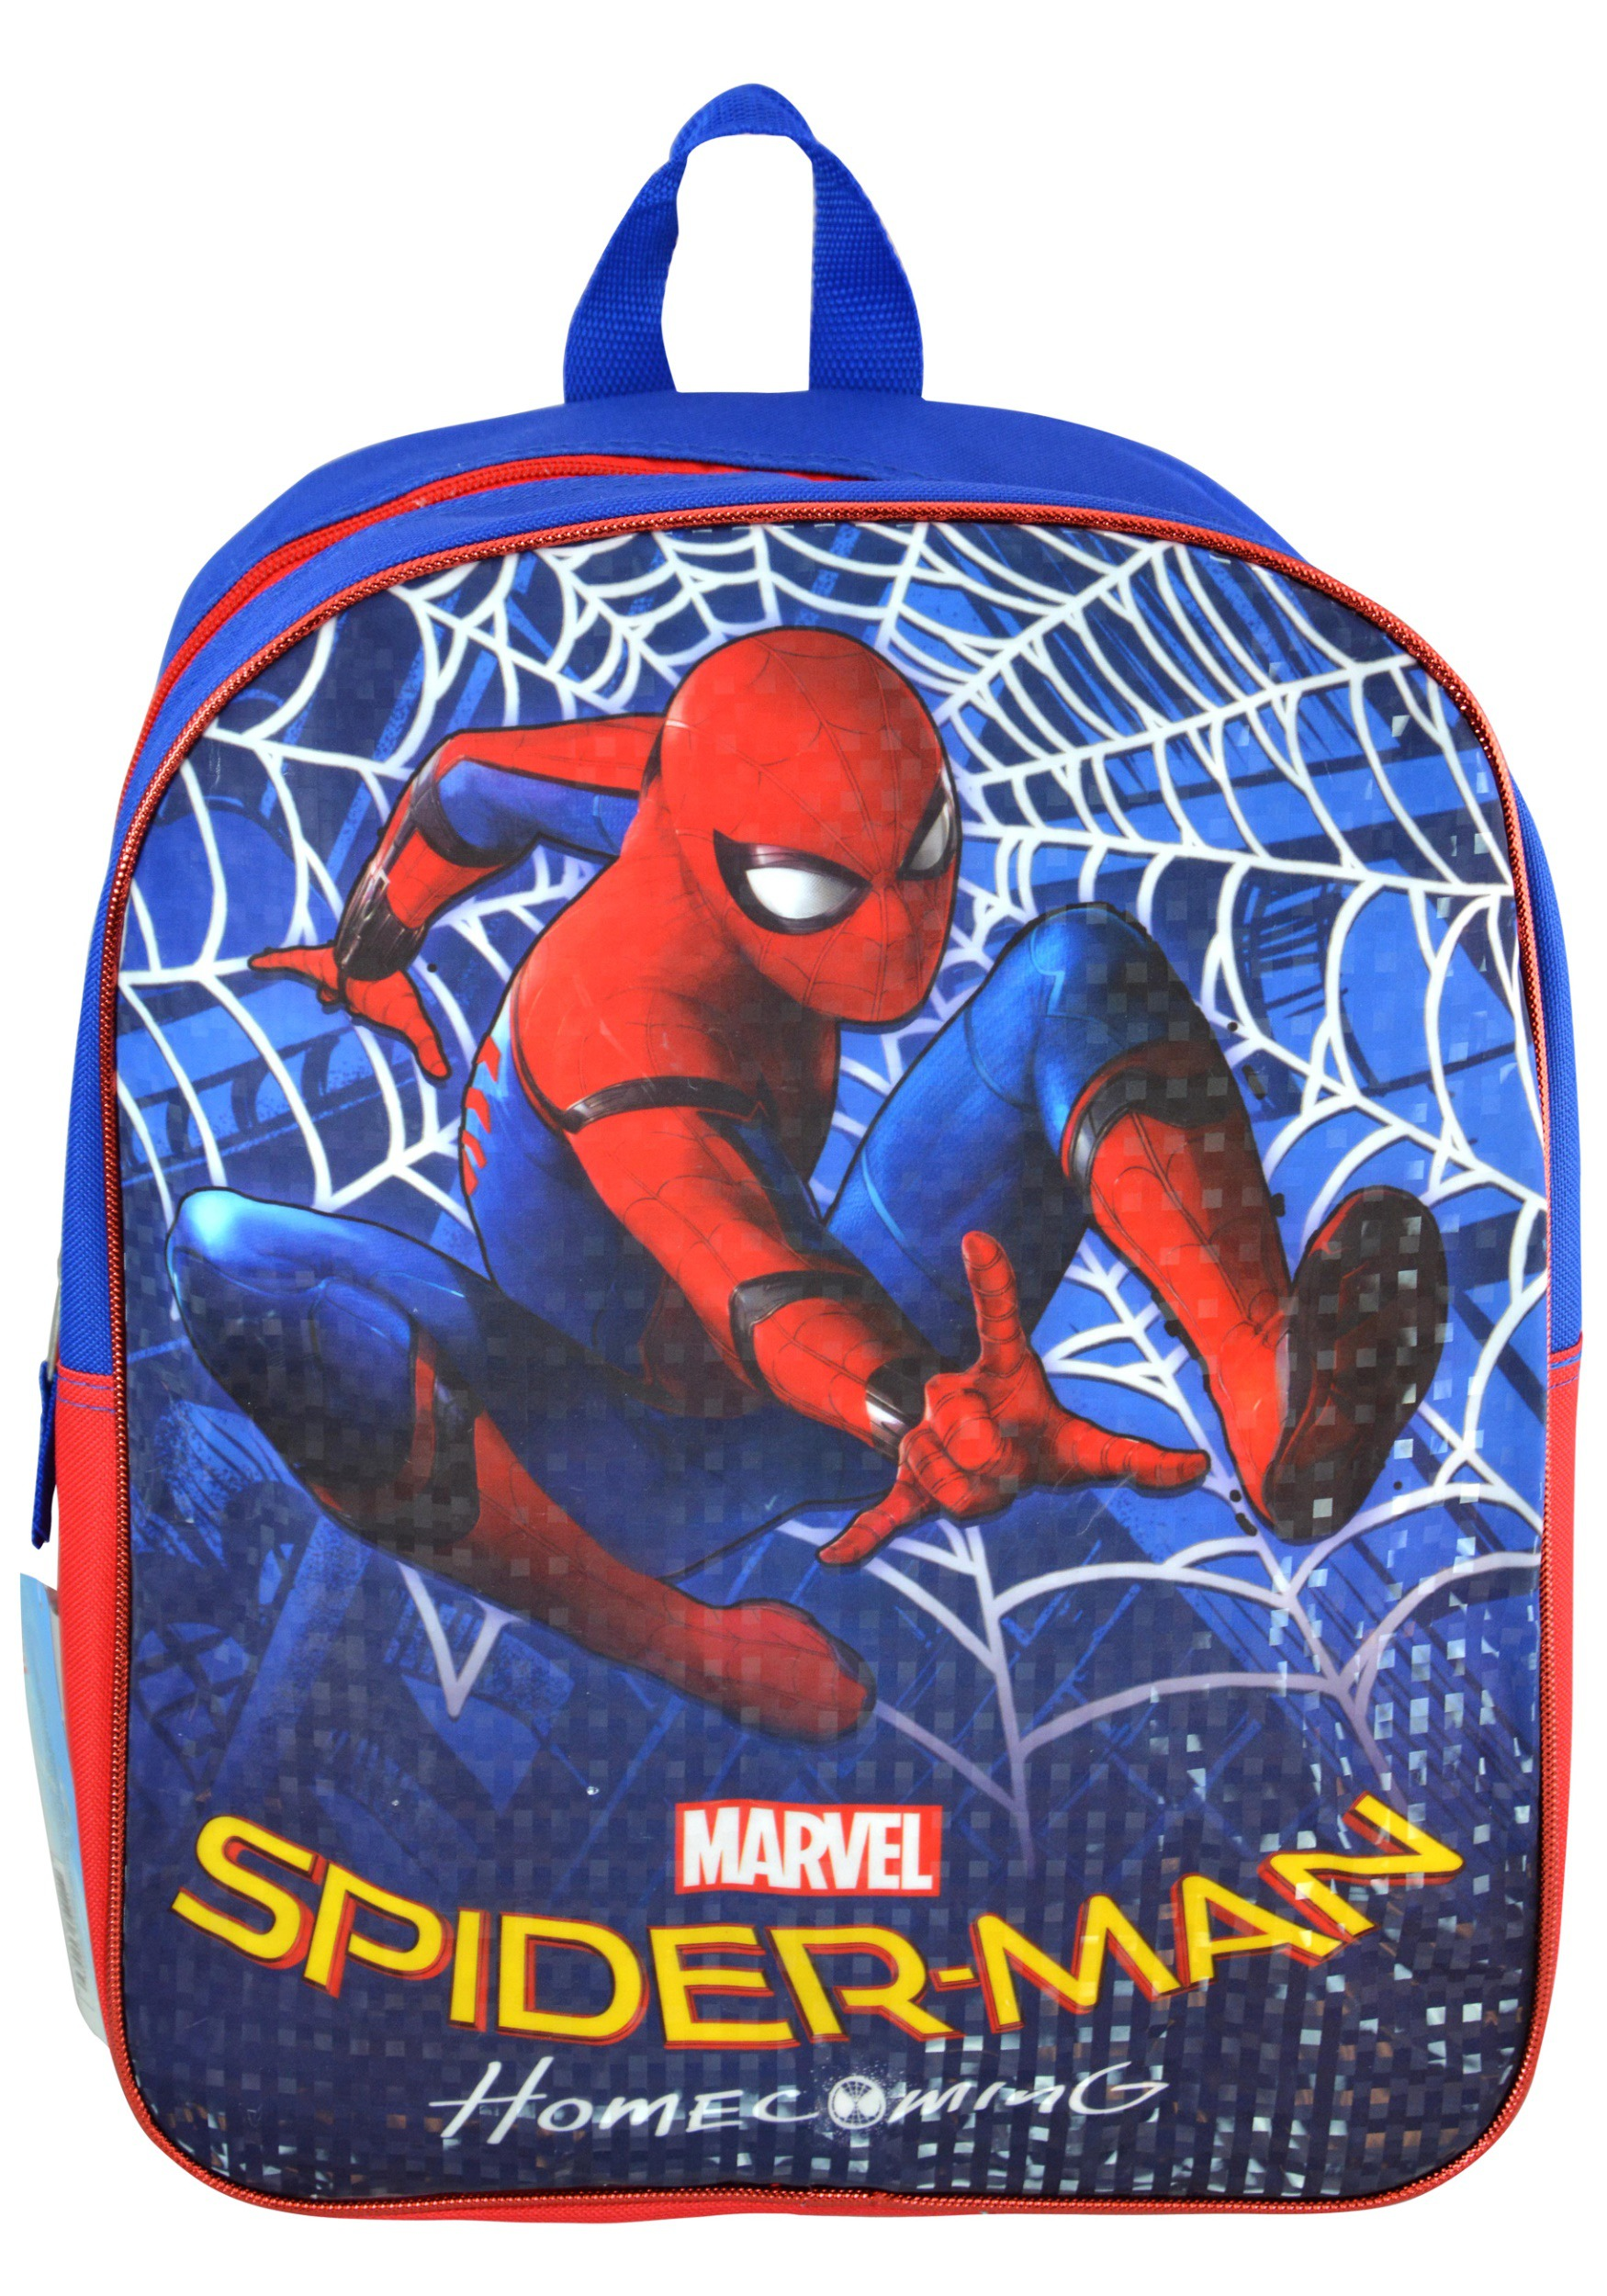 Spider-Man Homecoming Backpack